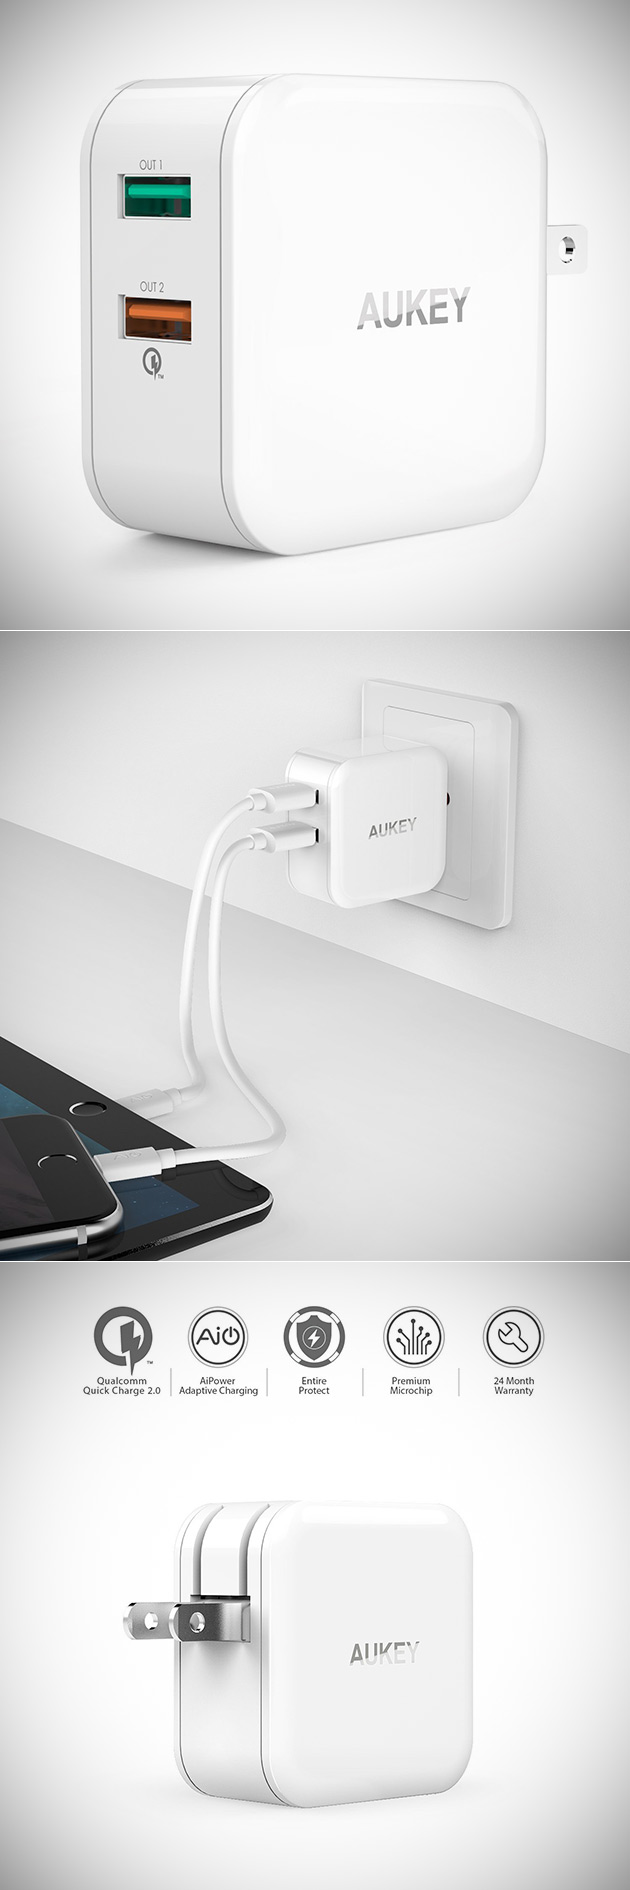 Aukey 2-Port USB Wall Charger